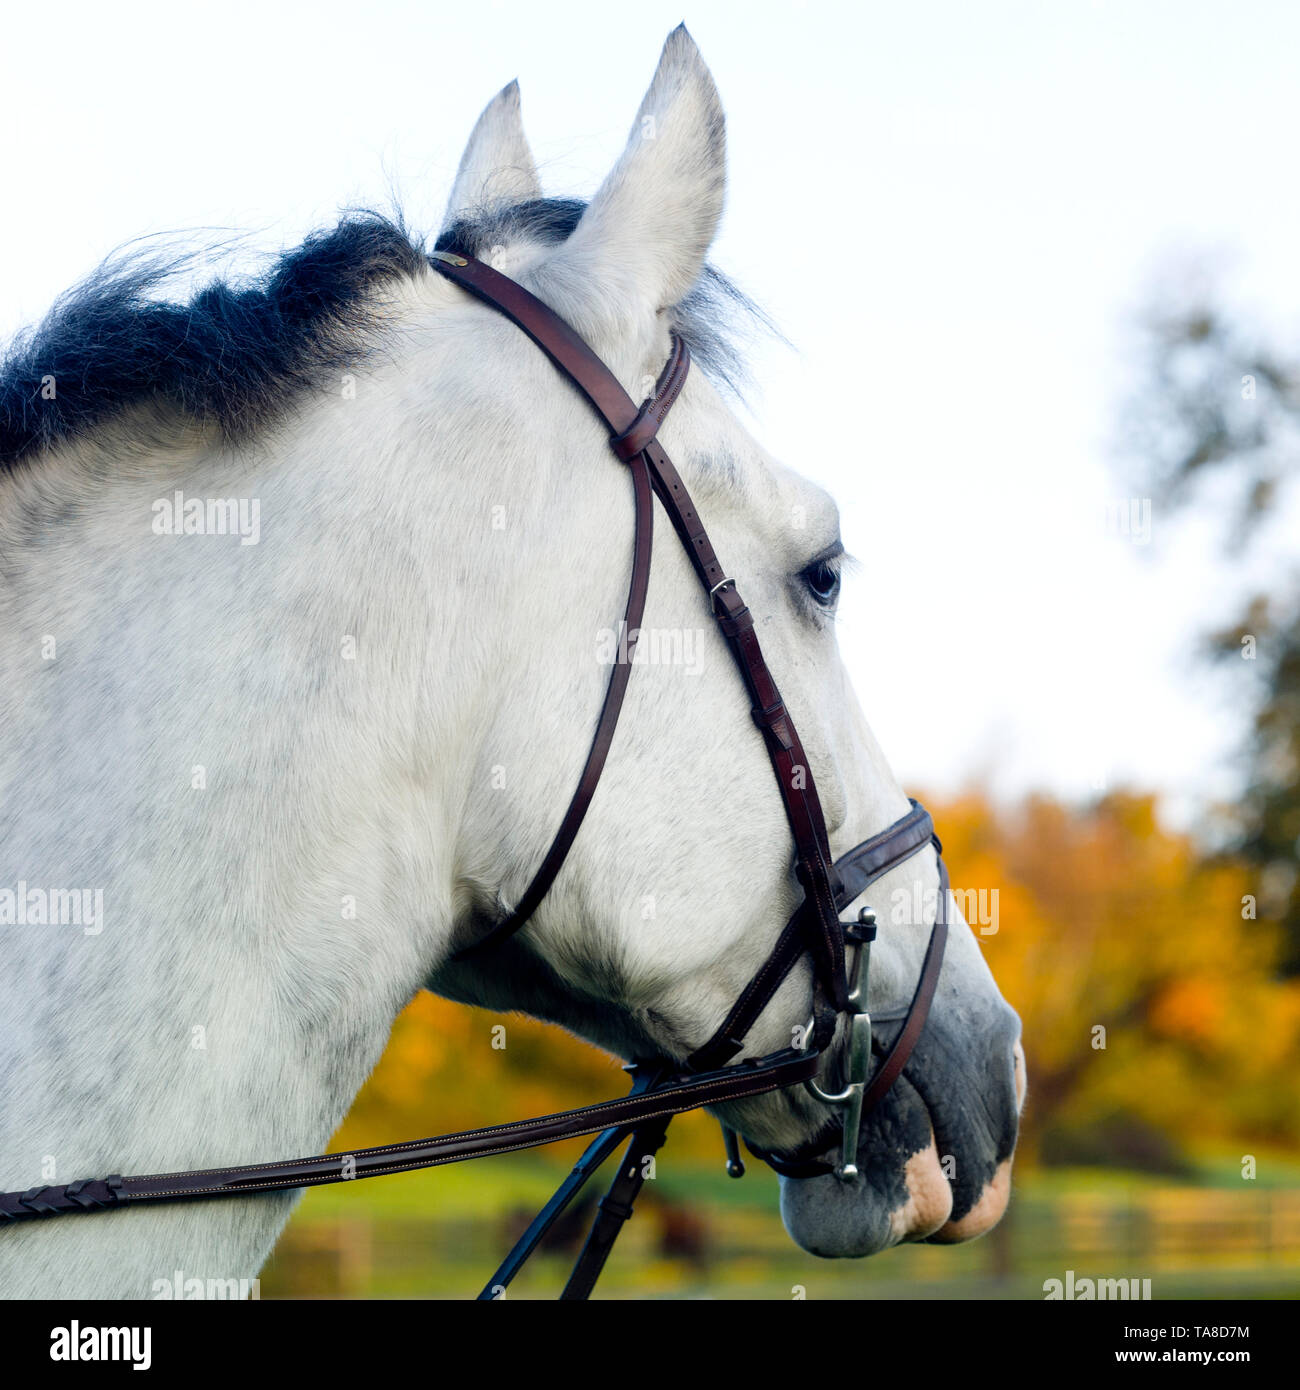 1b60553ecb Bridle Stock Photos & Bridle Stock Images - Page 2 - Alamy